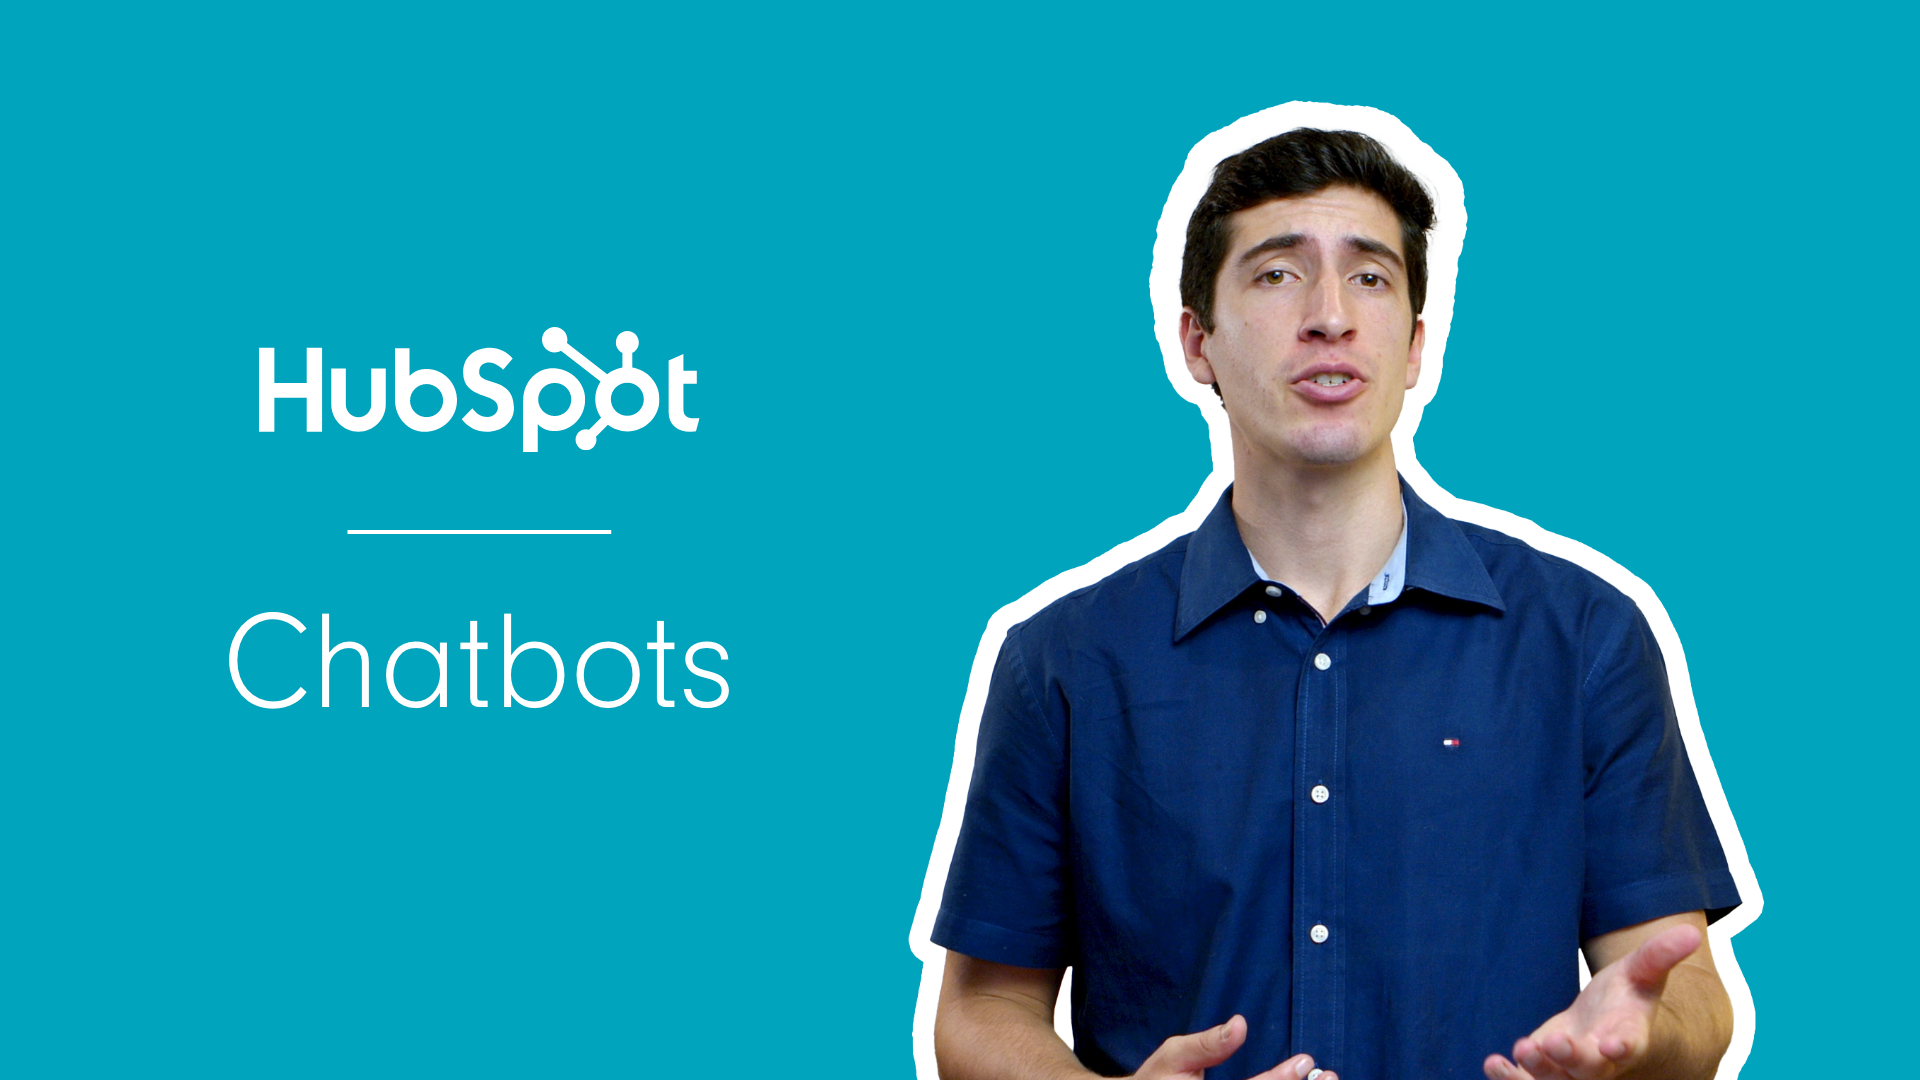 Create Your Own Chatbot Using HubSpot